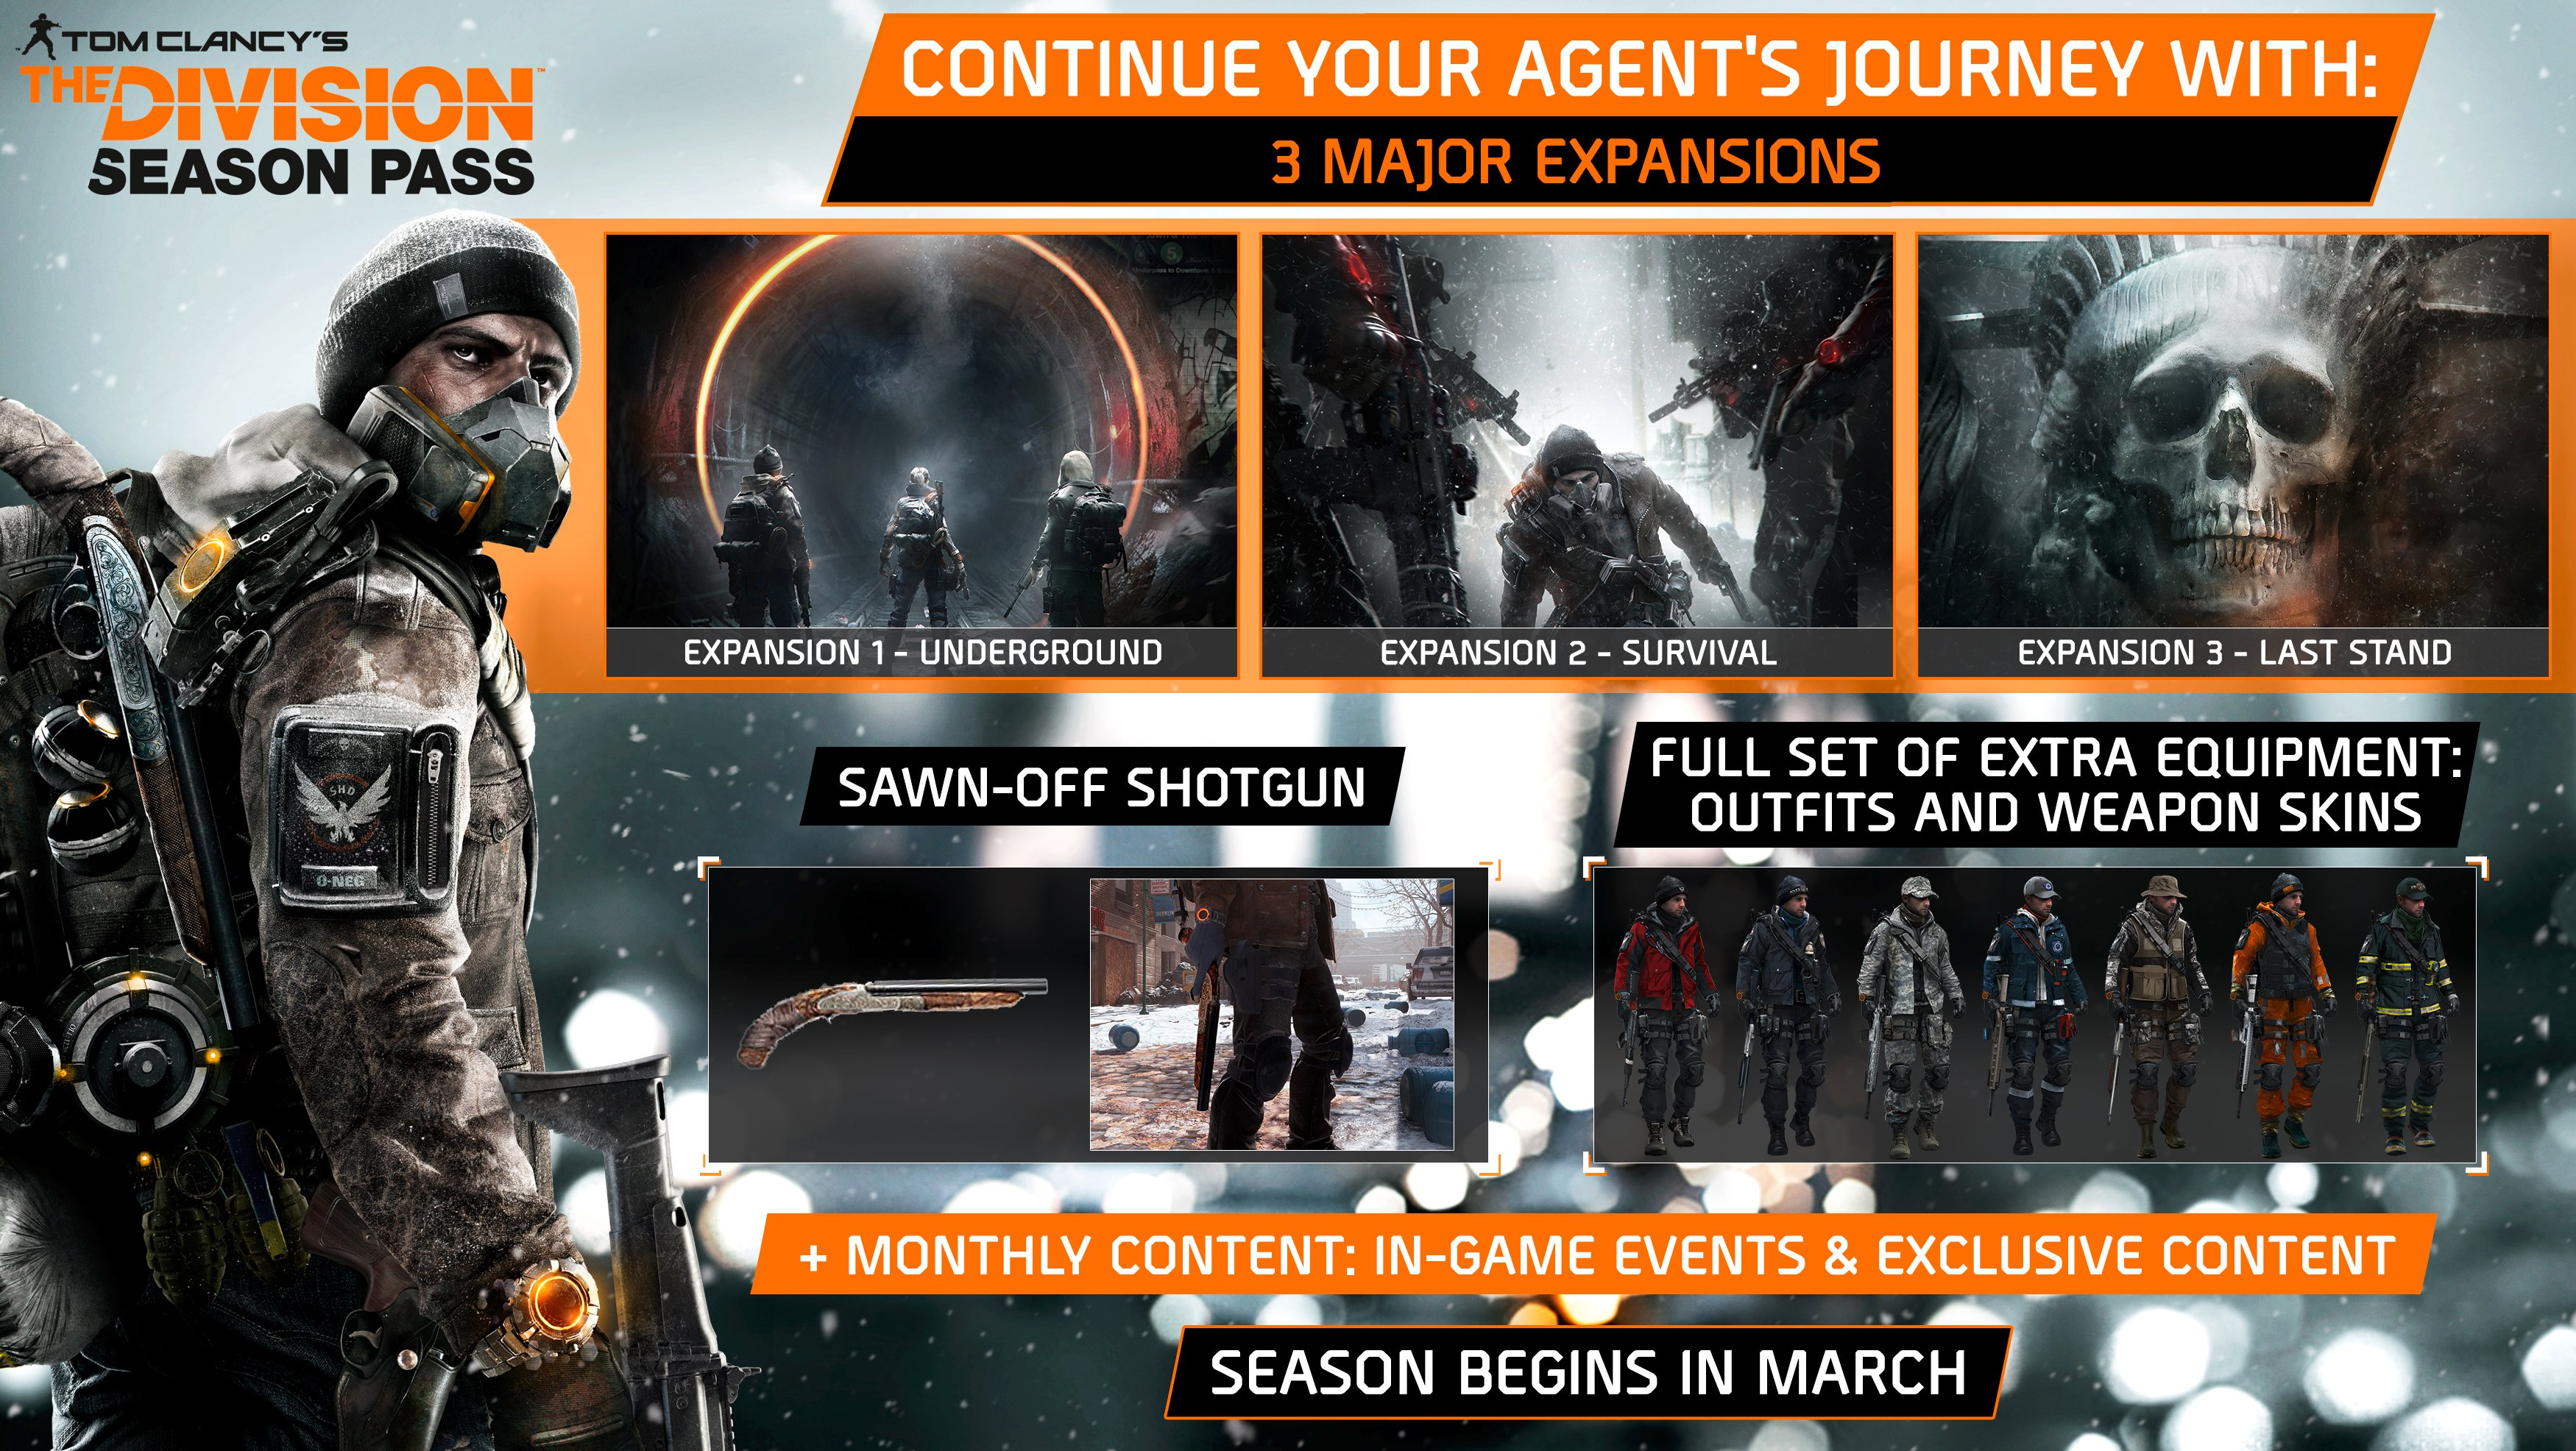 Tom Clancy's The Division™ - Season Pass game image